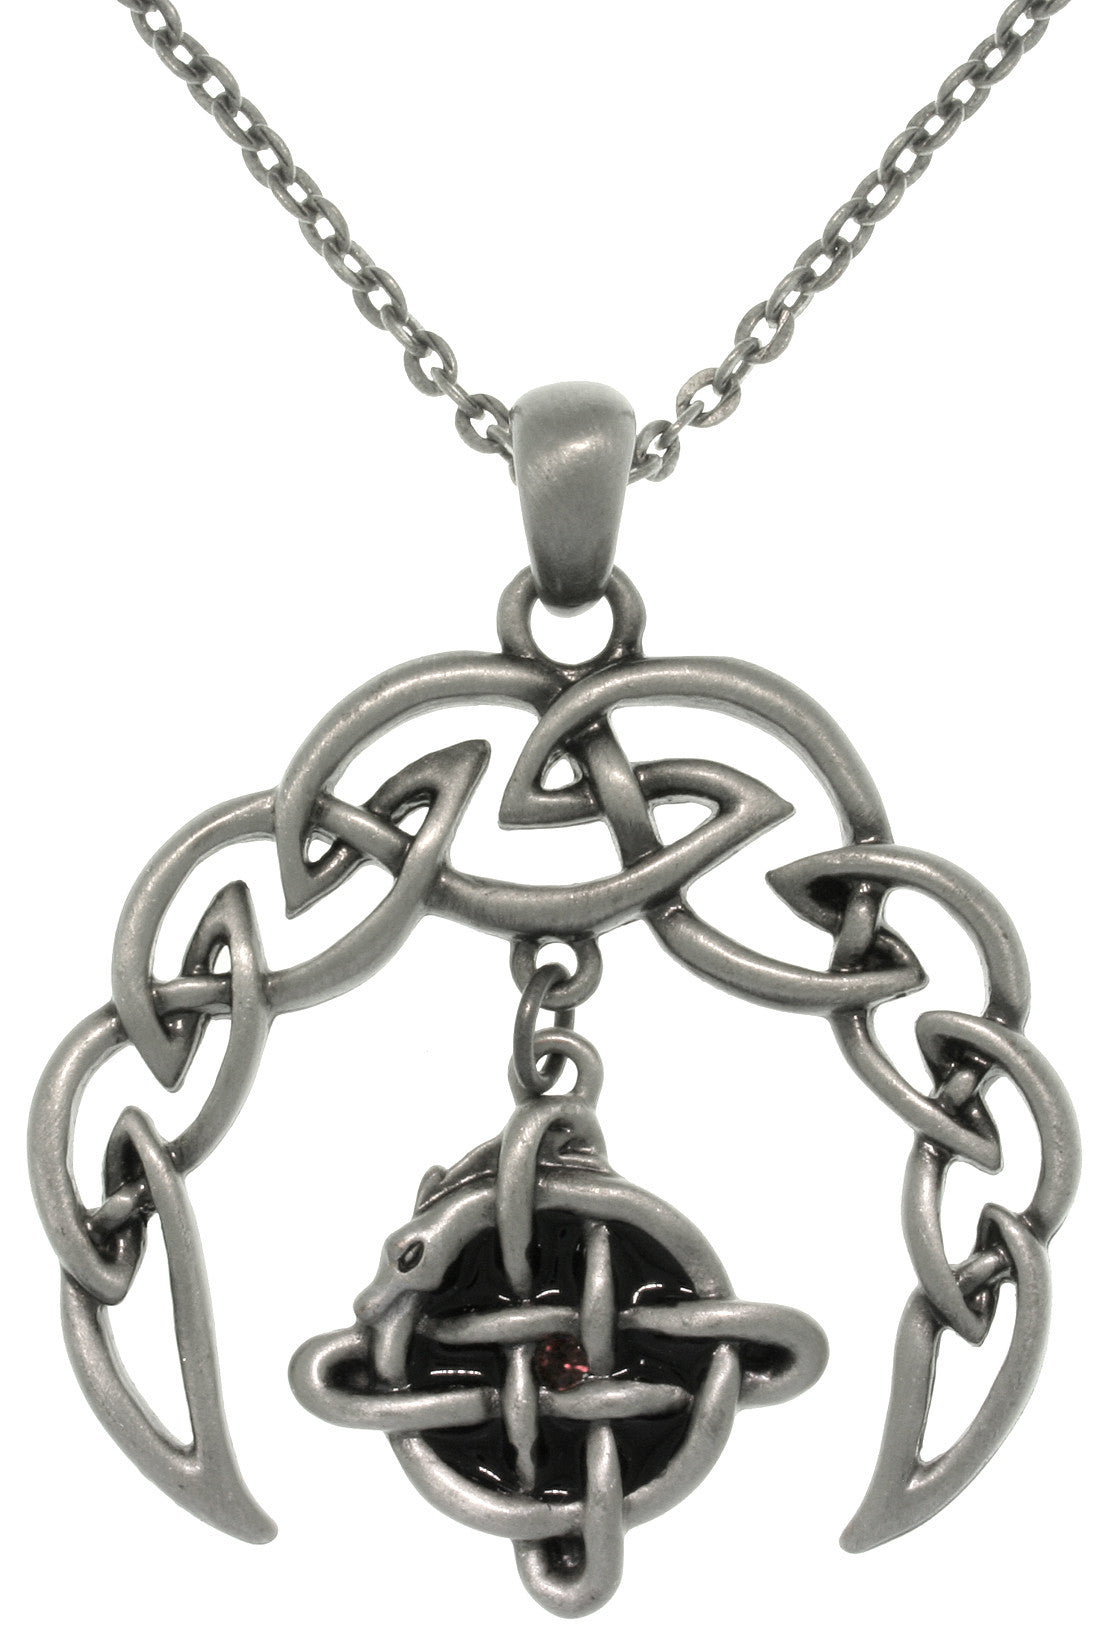 Jewelry Trends Pewter Celtic Crescent Moon Knot Pendant with 24 Inch Chain Necklace